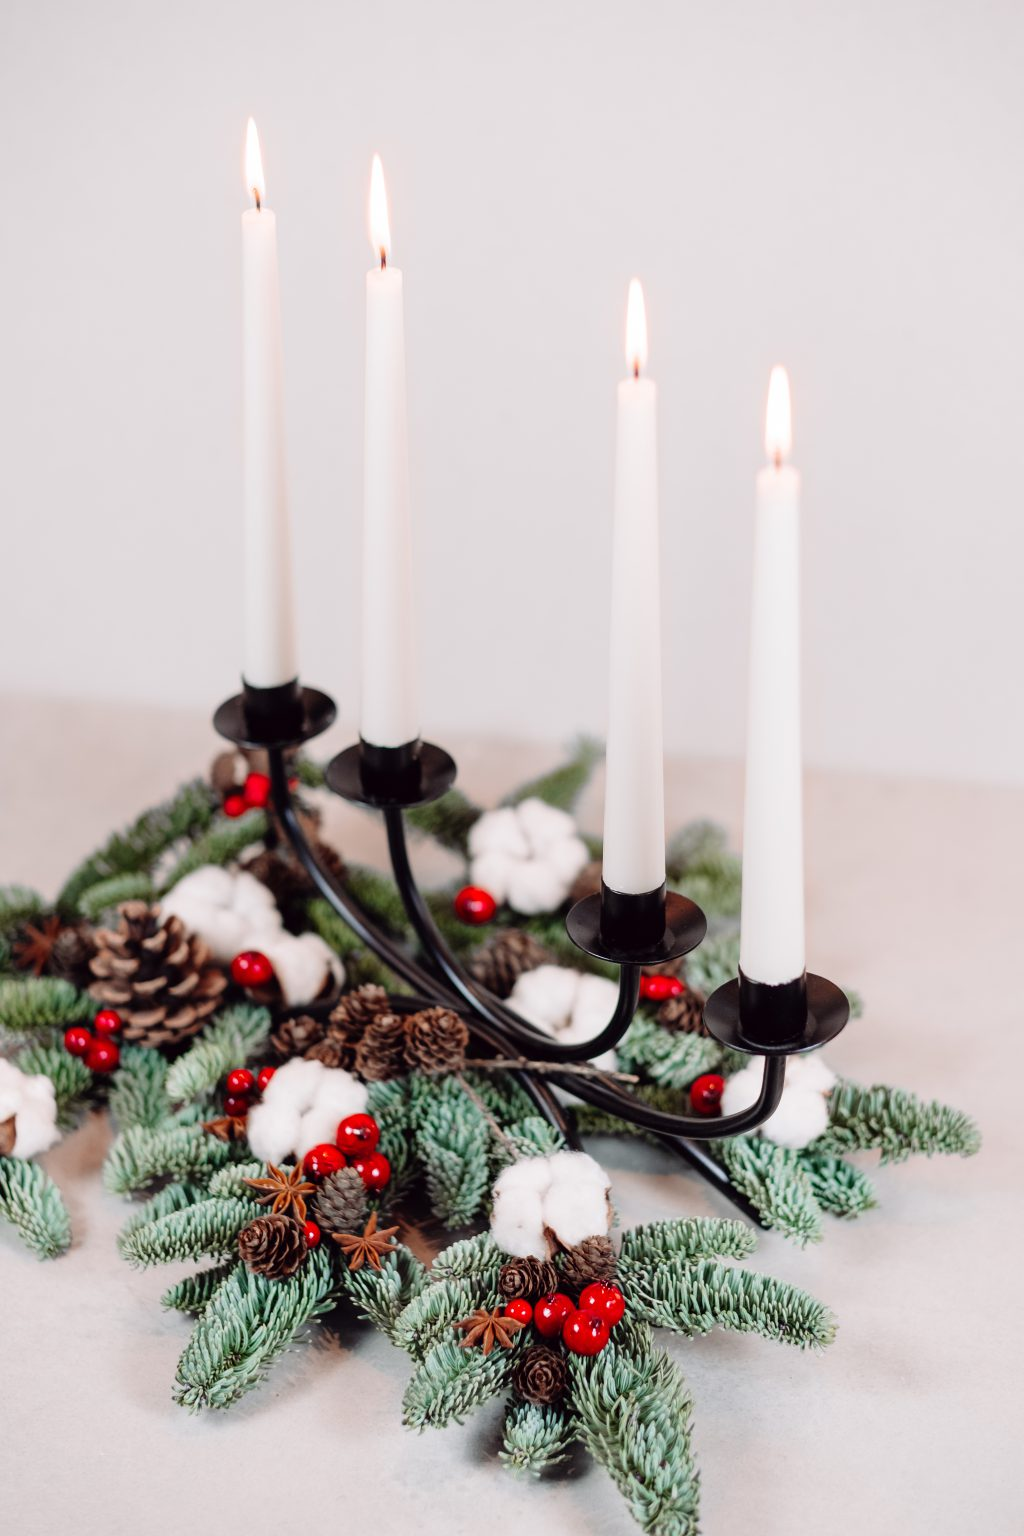 Christmas spruce decoration with candles 4 - free stock photo